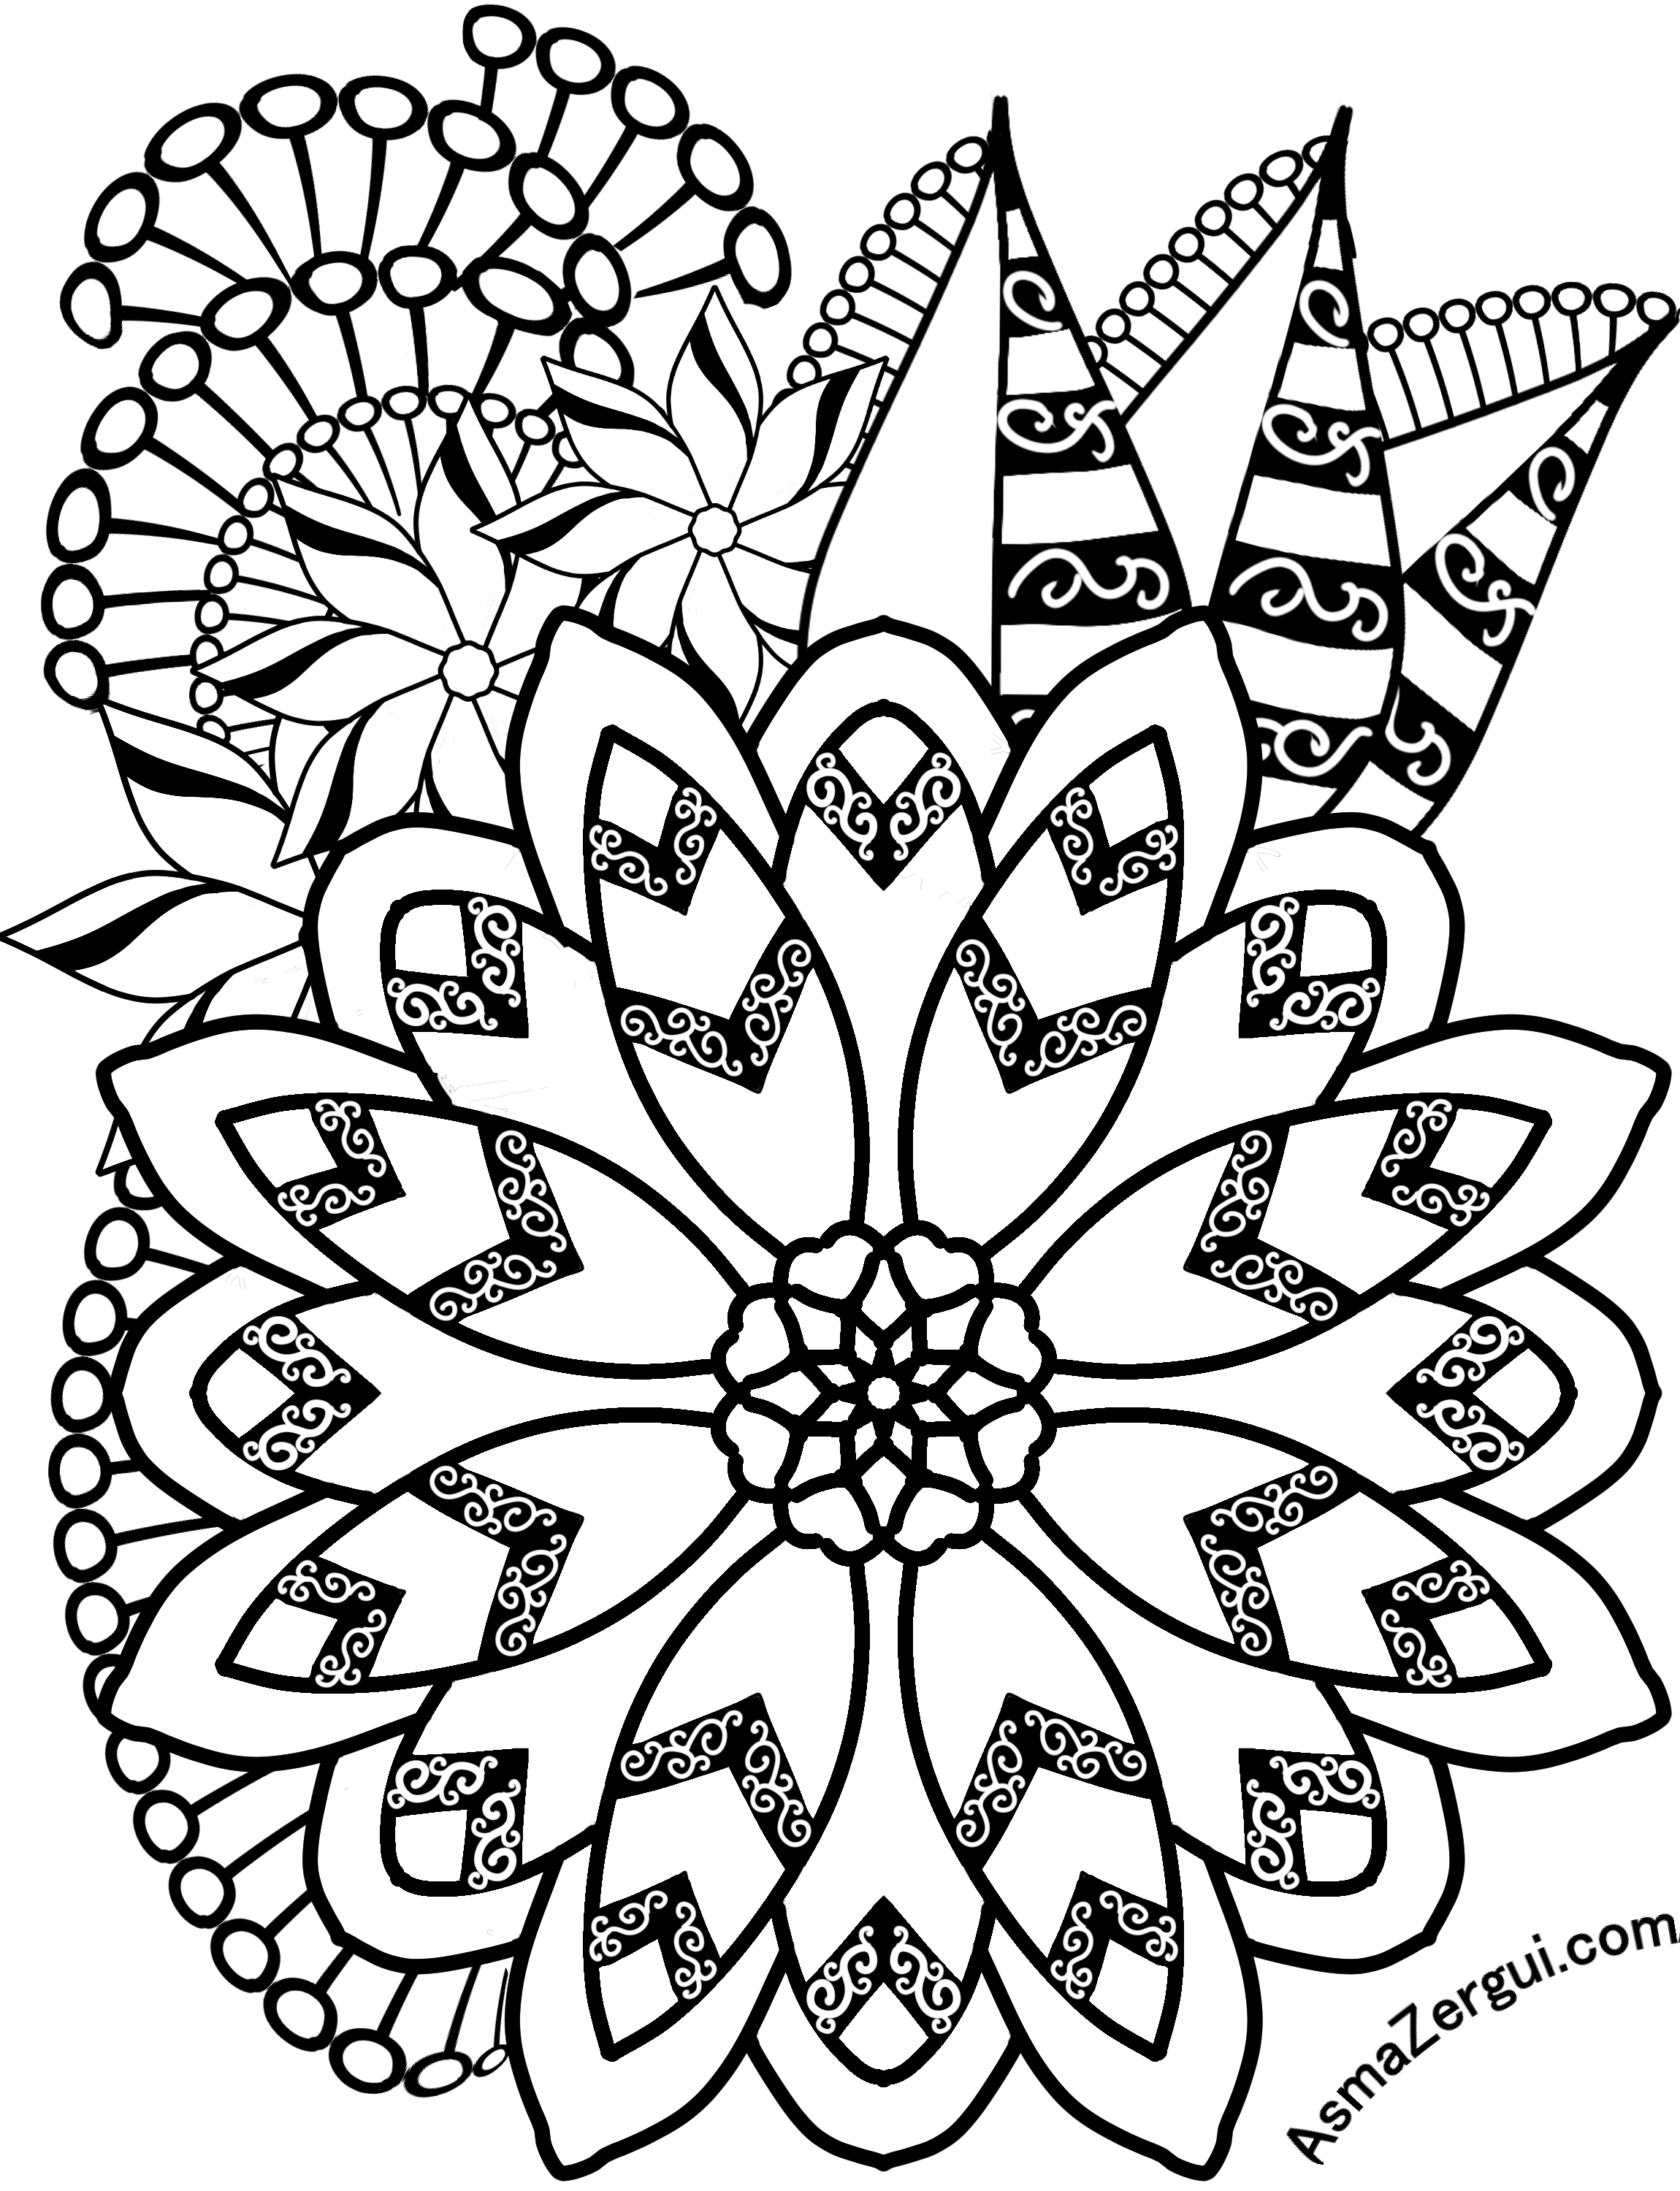 Free coloring pages adult coloring worldwide for Adult color pages